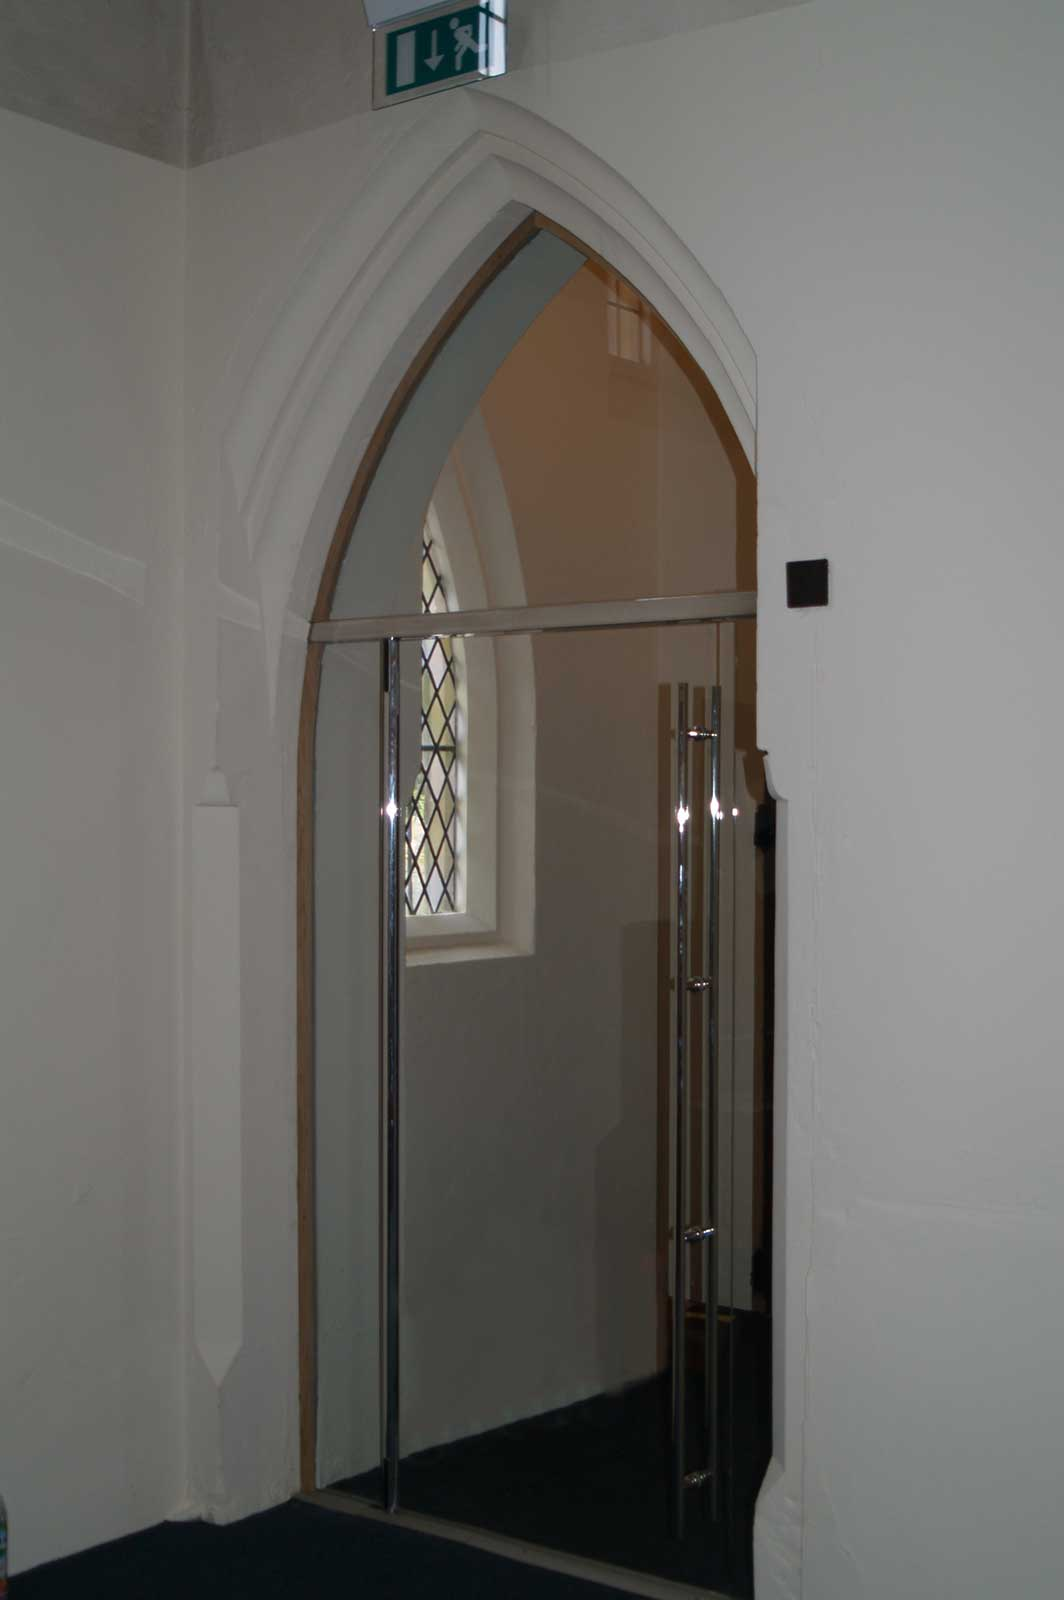 Dorma Beyond Anti-Pinch Glass Door, St. Mark's Church